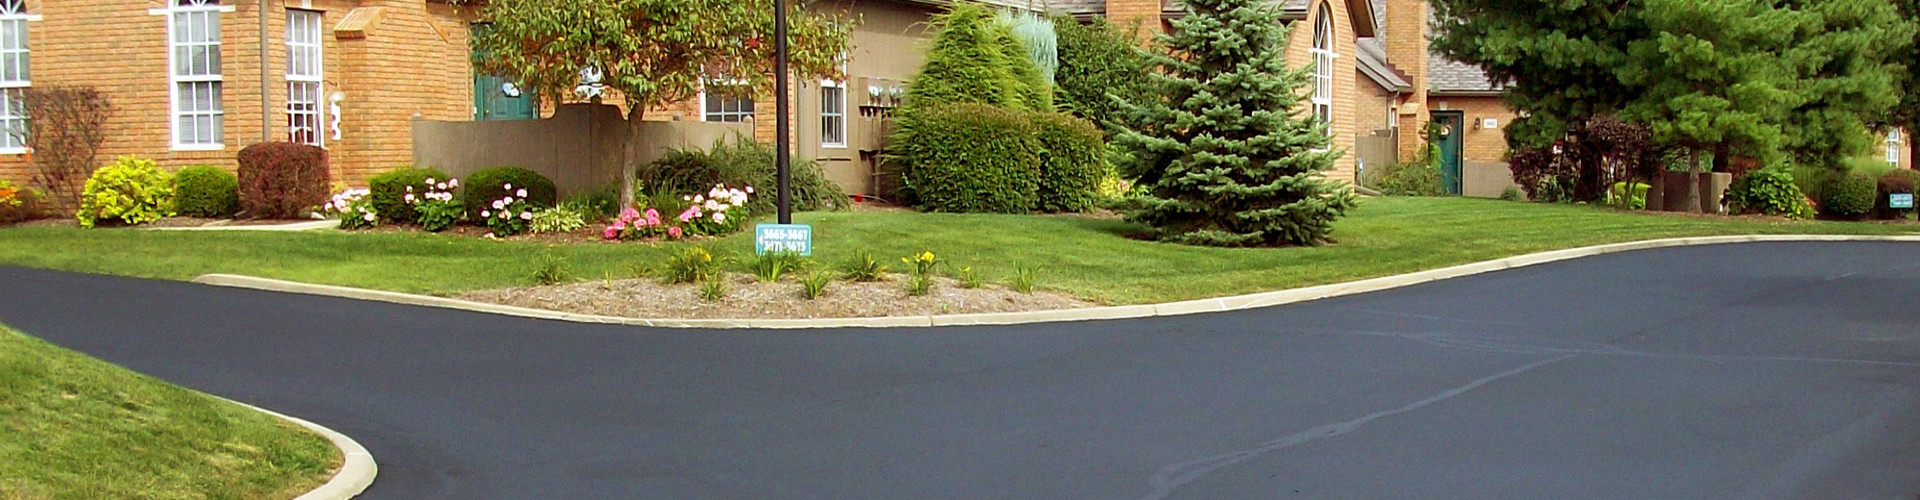 Contact Paving Companies